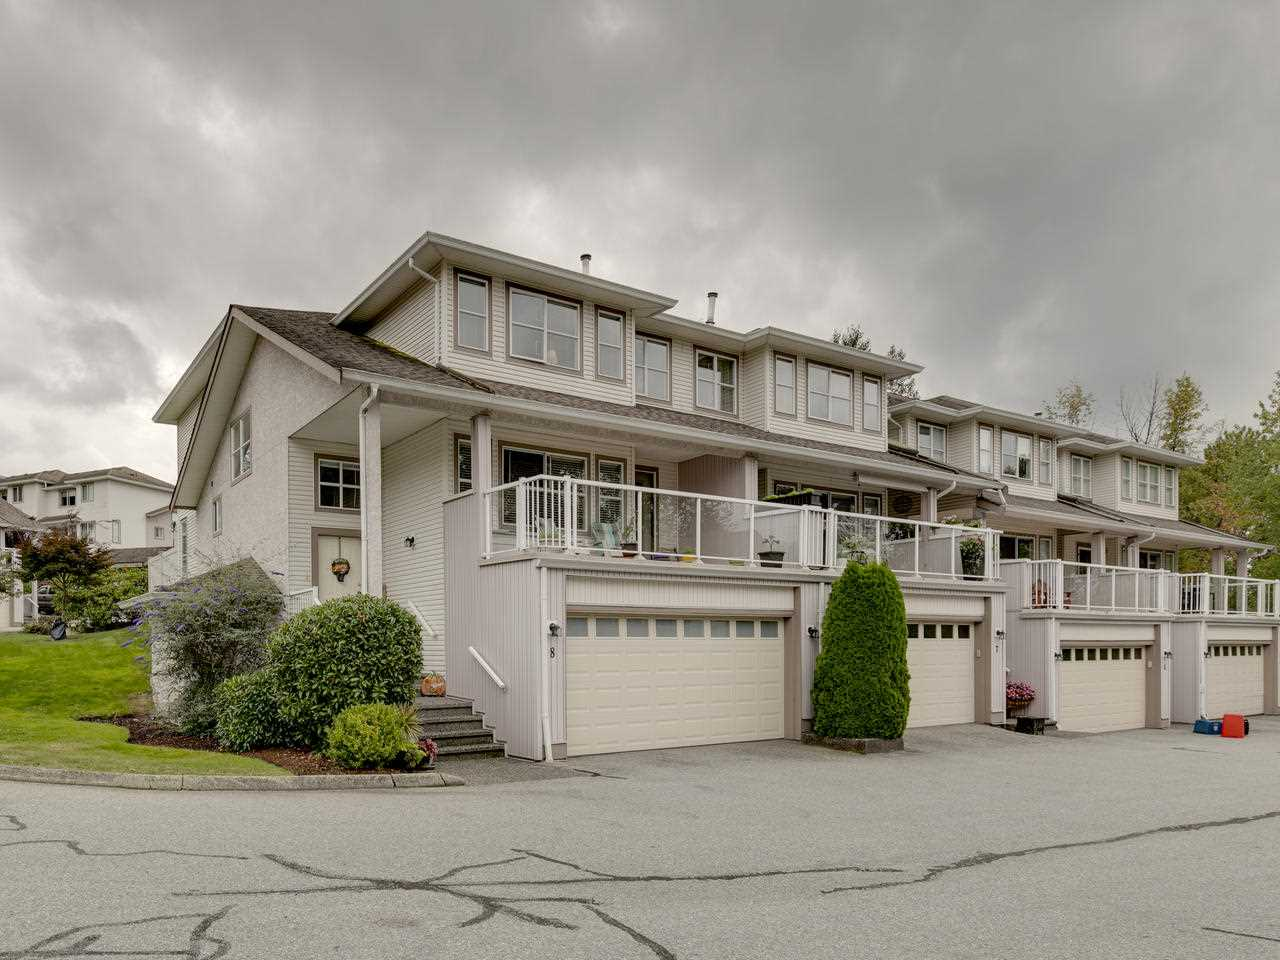 Totally updated 3 bedroom , 3 bathroom townhome in East Maple Ridge. $36,000 spent in upgrades to the kitchen and bathrooms. 1835 sqft on 3 levels plus bonus 350 sqft of bonus storage area in basement. Bright open floor plan with a over sized deck on the front and a great patio area for BBQ's at the back. Bonus is the 240 volt wired in the garage for power tools for recharging your electric car. Gas line is available if you want a gas stove. West coast express station not far away. Shows extremely well